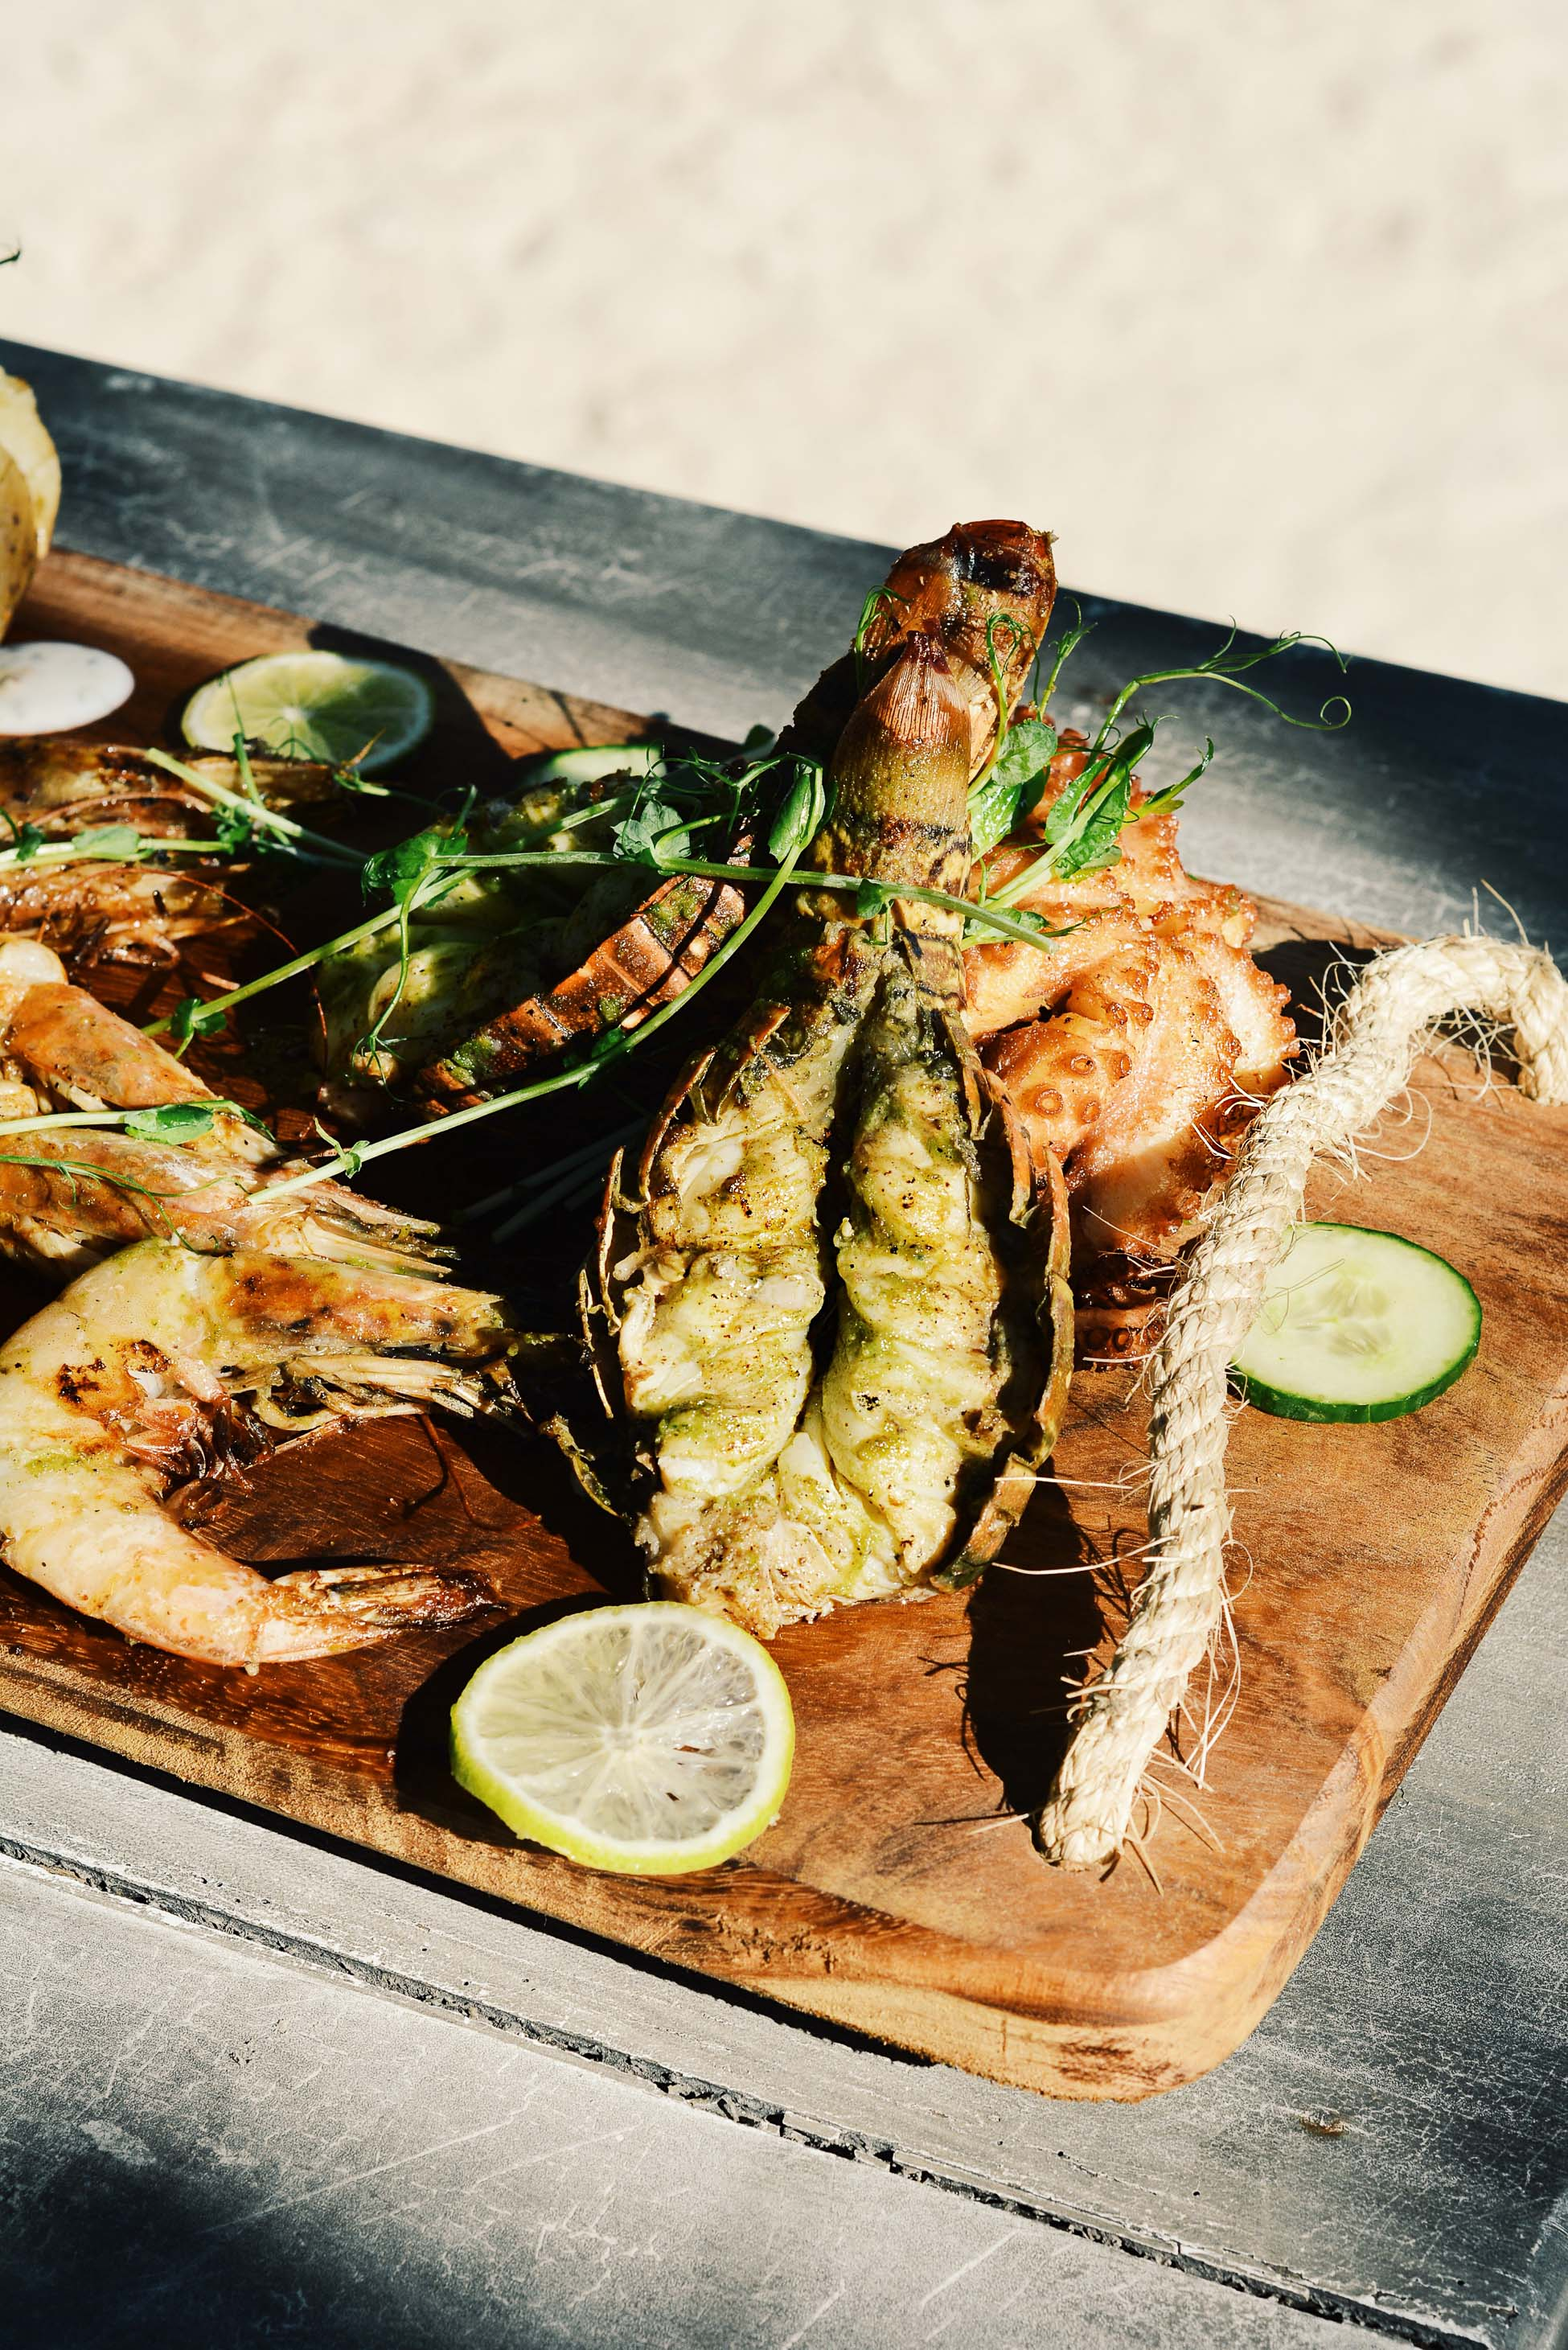 Seafood by the beach